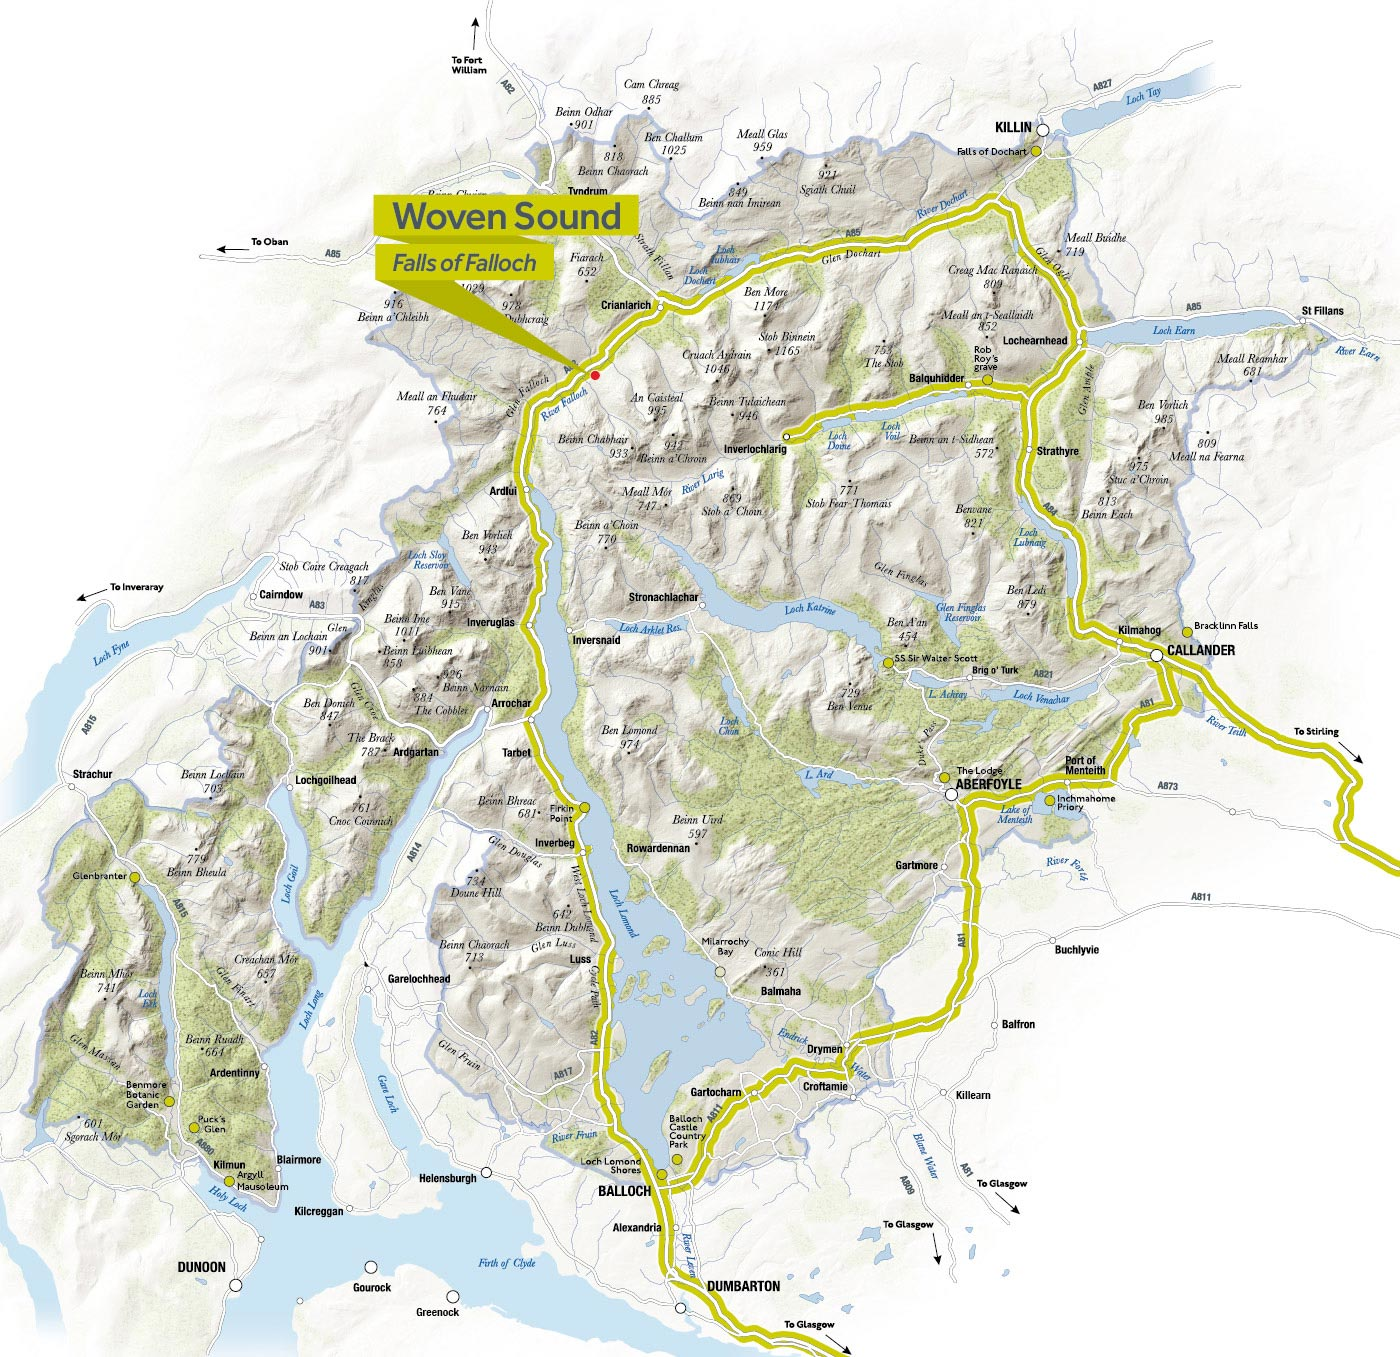 Click to view full size Woven Sound Scenic Route Map